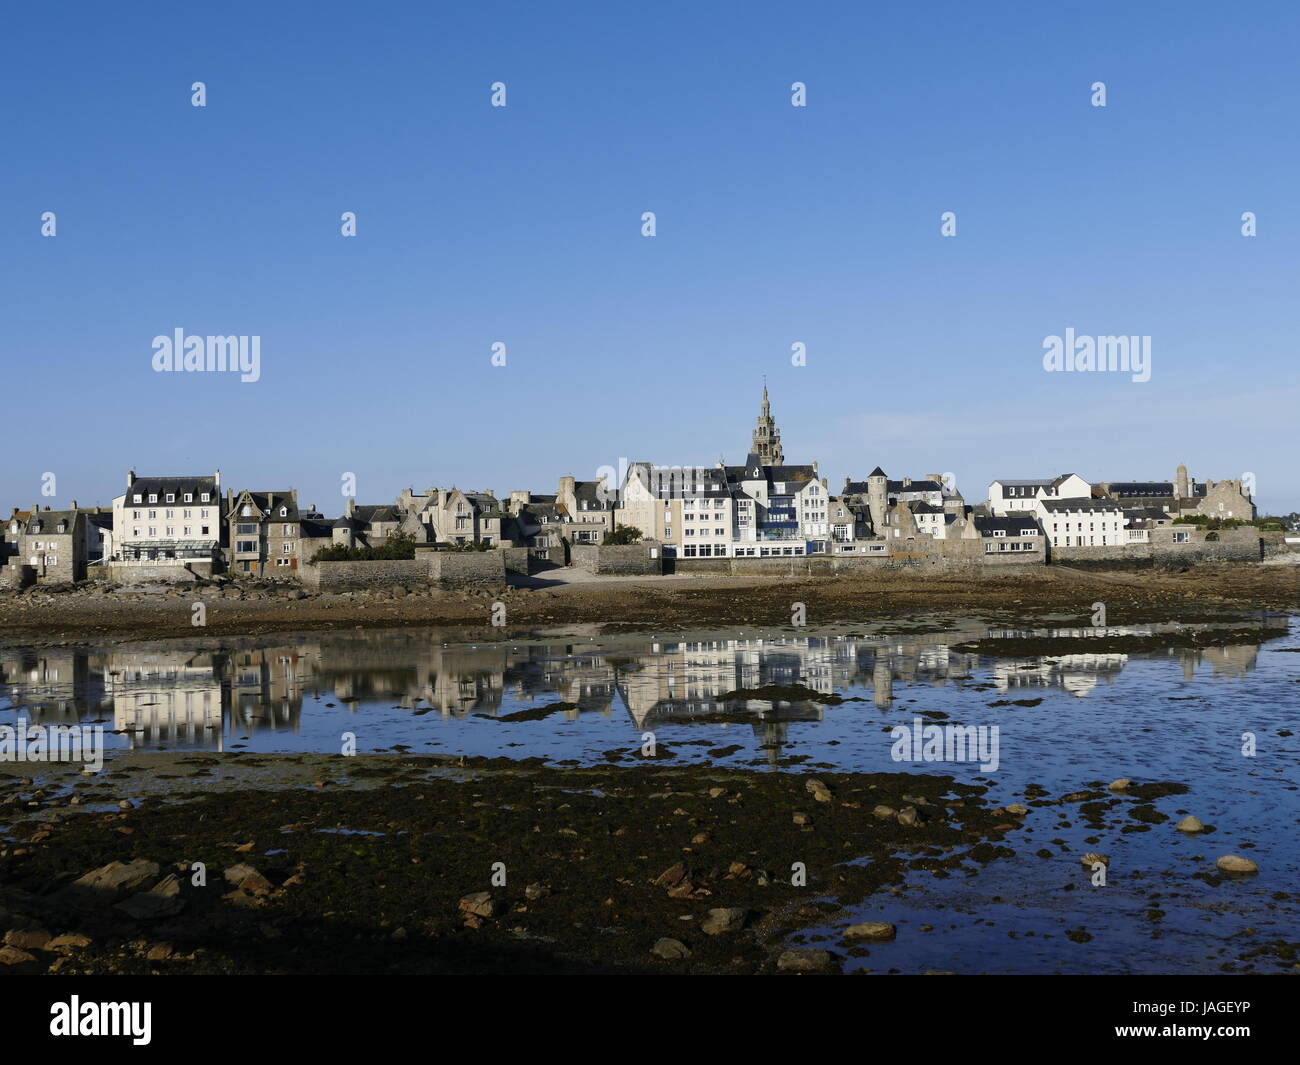 early-morning-village-skyline-reflected-